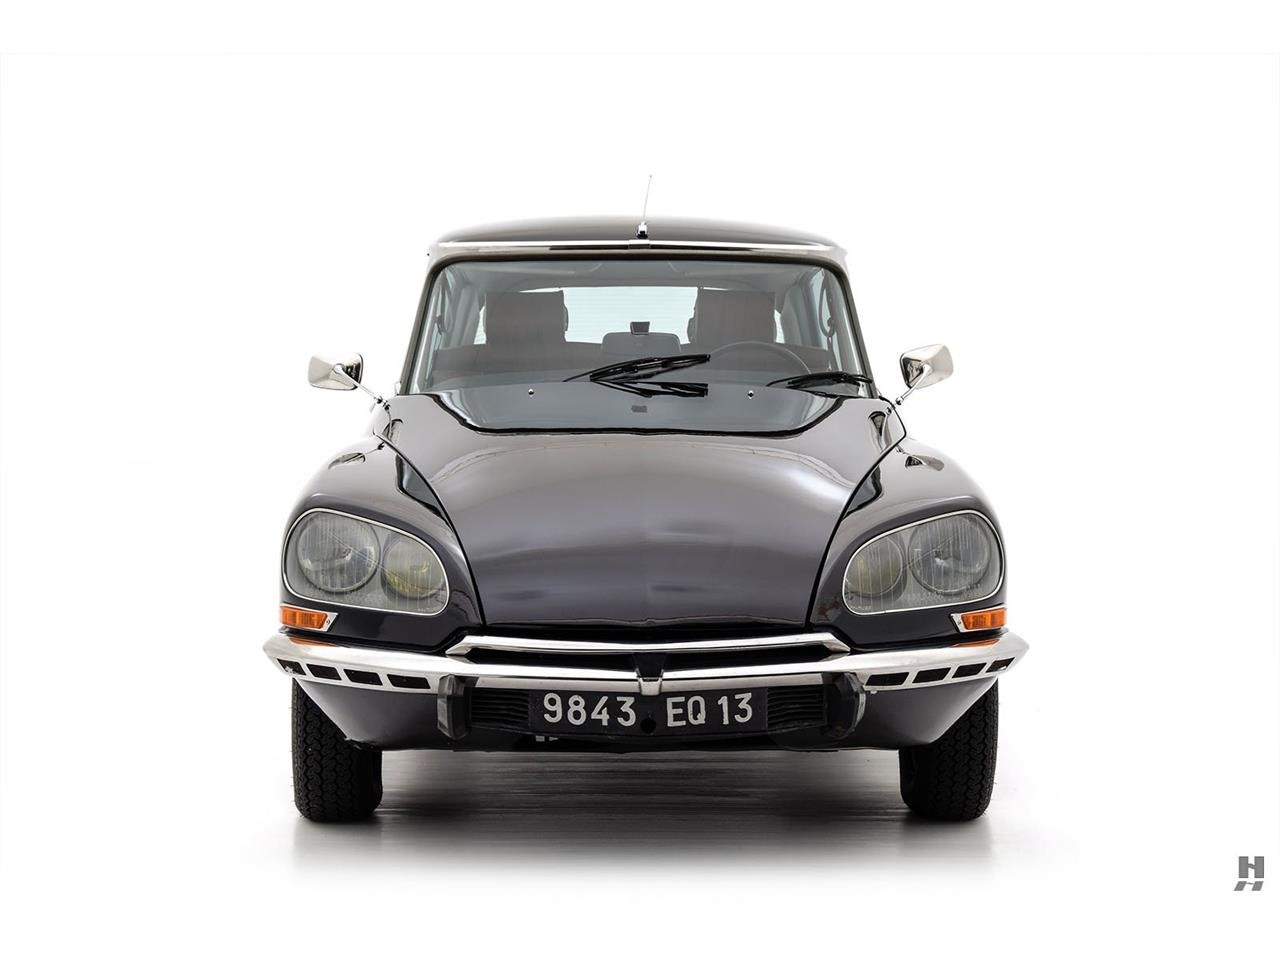 Large Picture of Classic '72 Citroen DS21 Pallas located in Missouri - $59,500.00 - P3WY